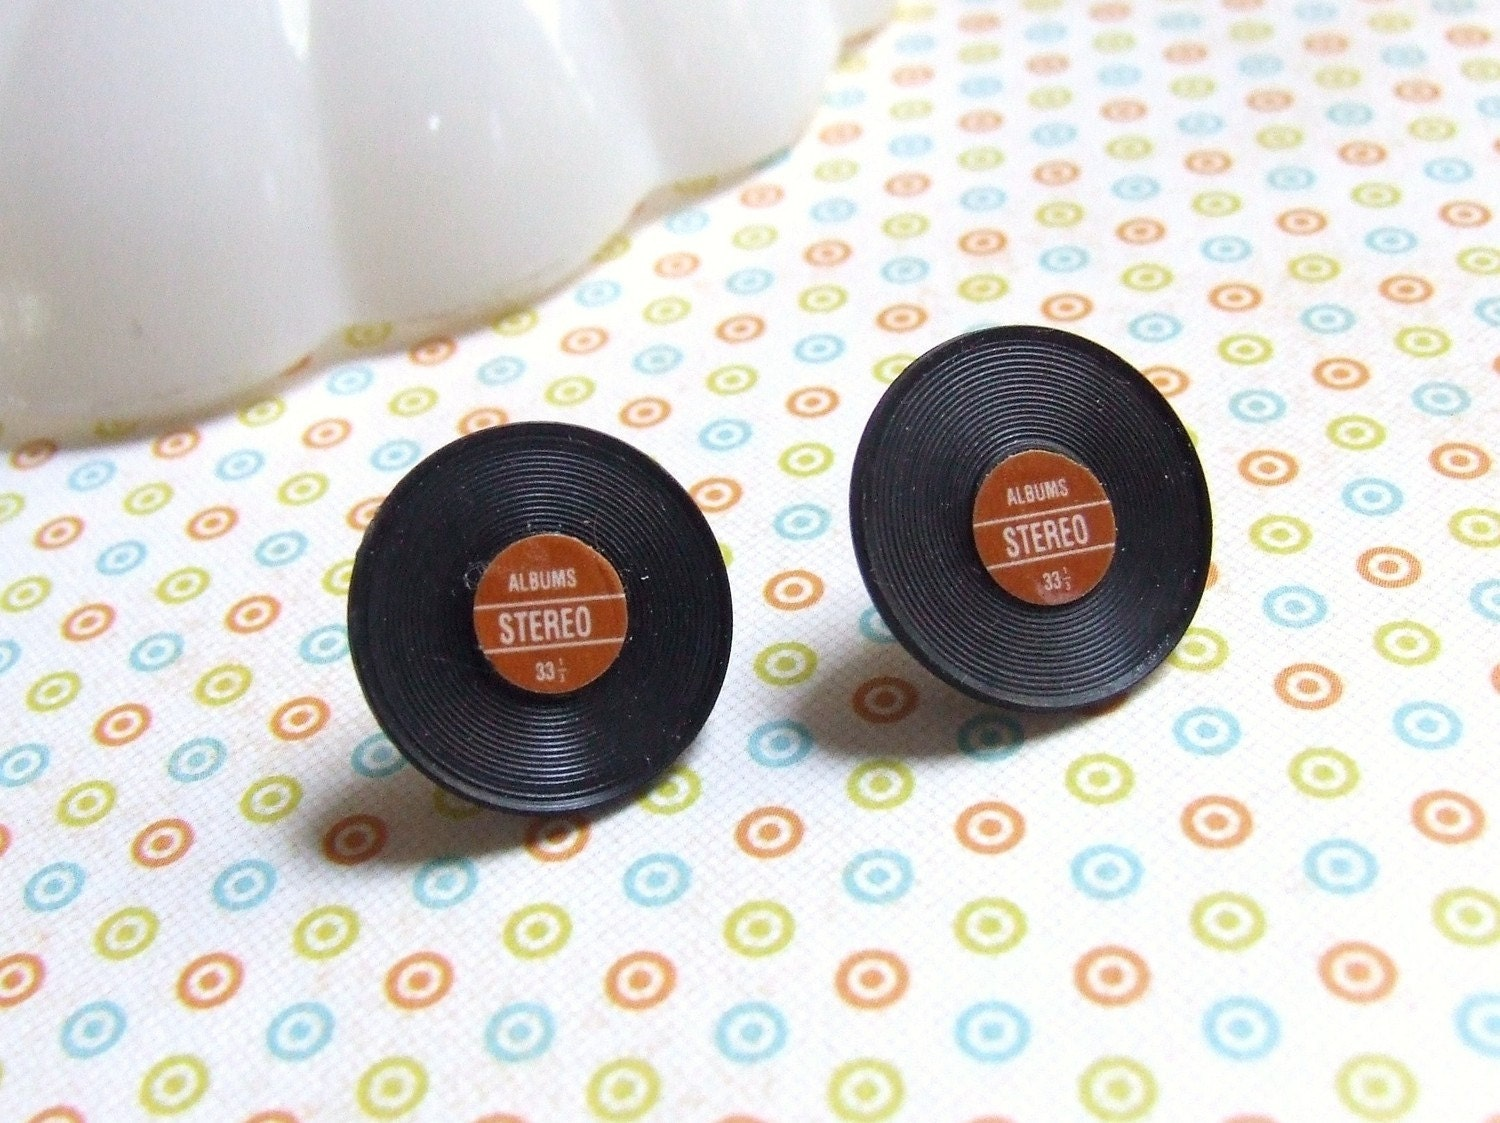 You Spin Me Round - Red Black - Miniature Vintage Record Album - Fun Plastic - Hypoallergenic Post Stud Earrings